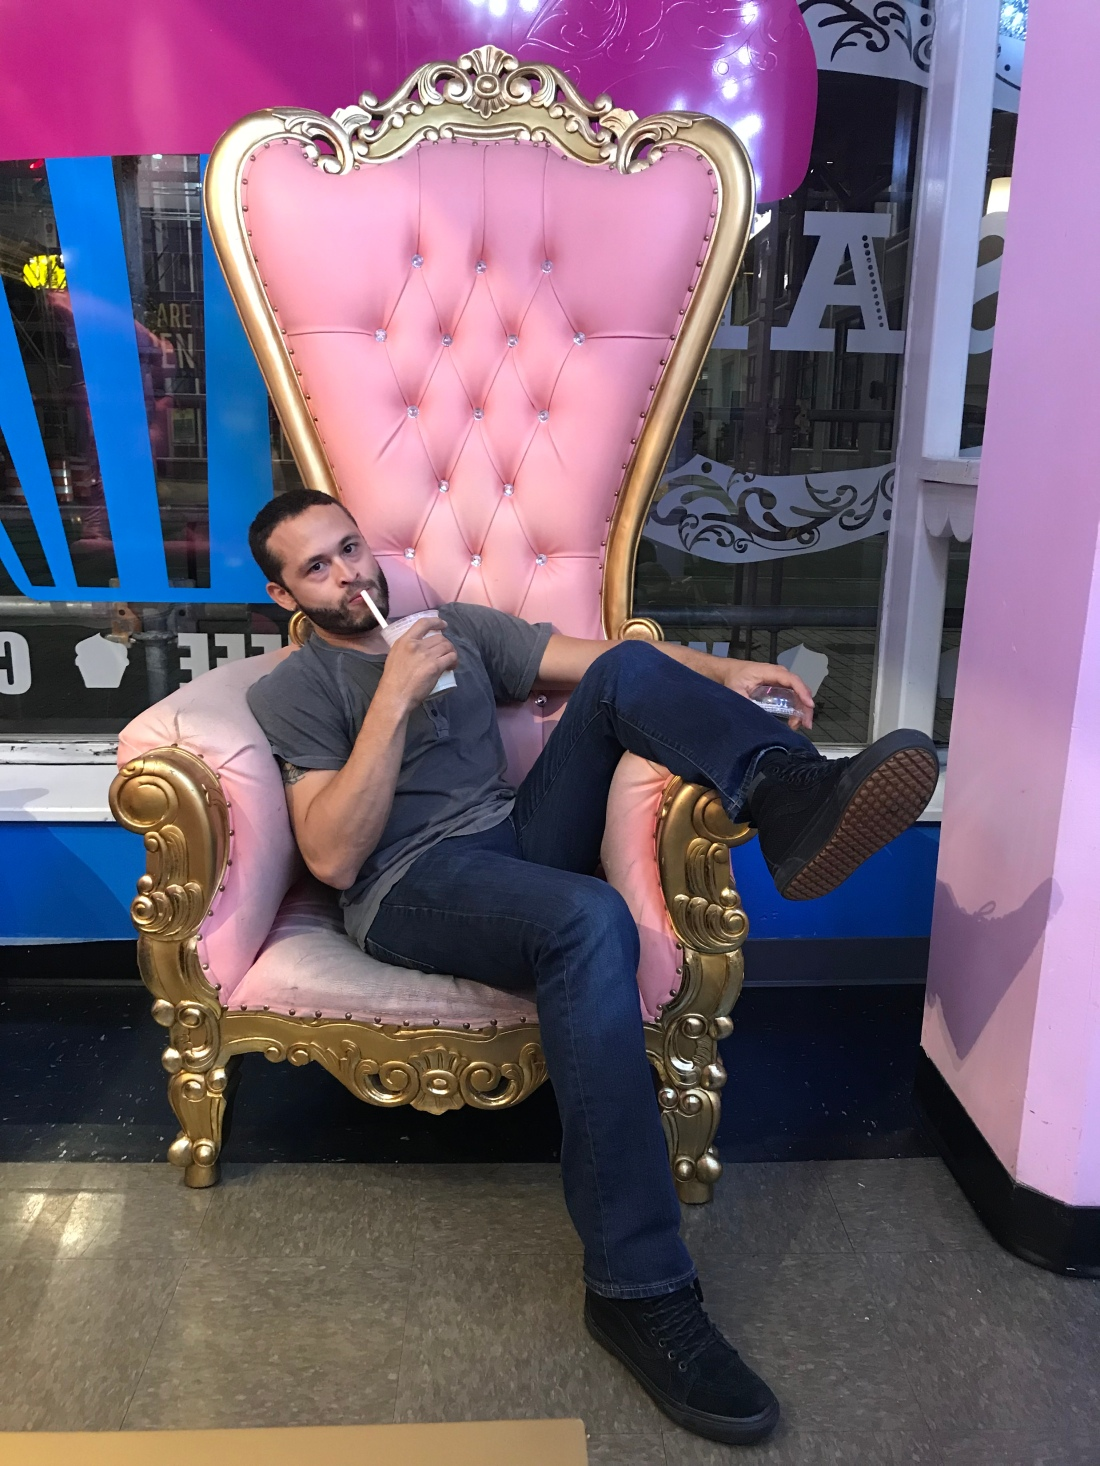 man in pink chair